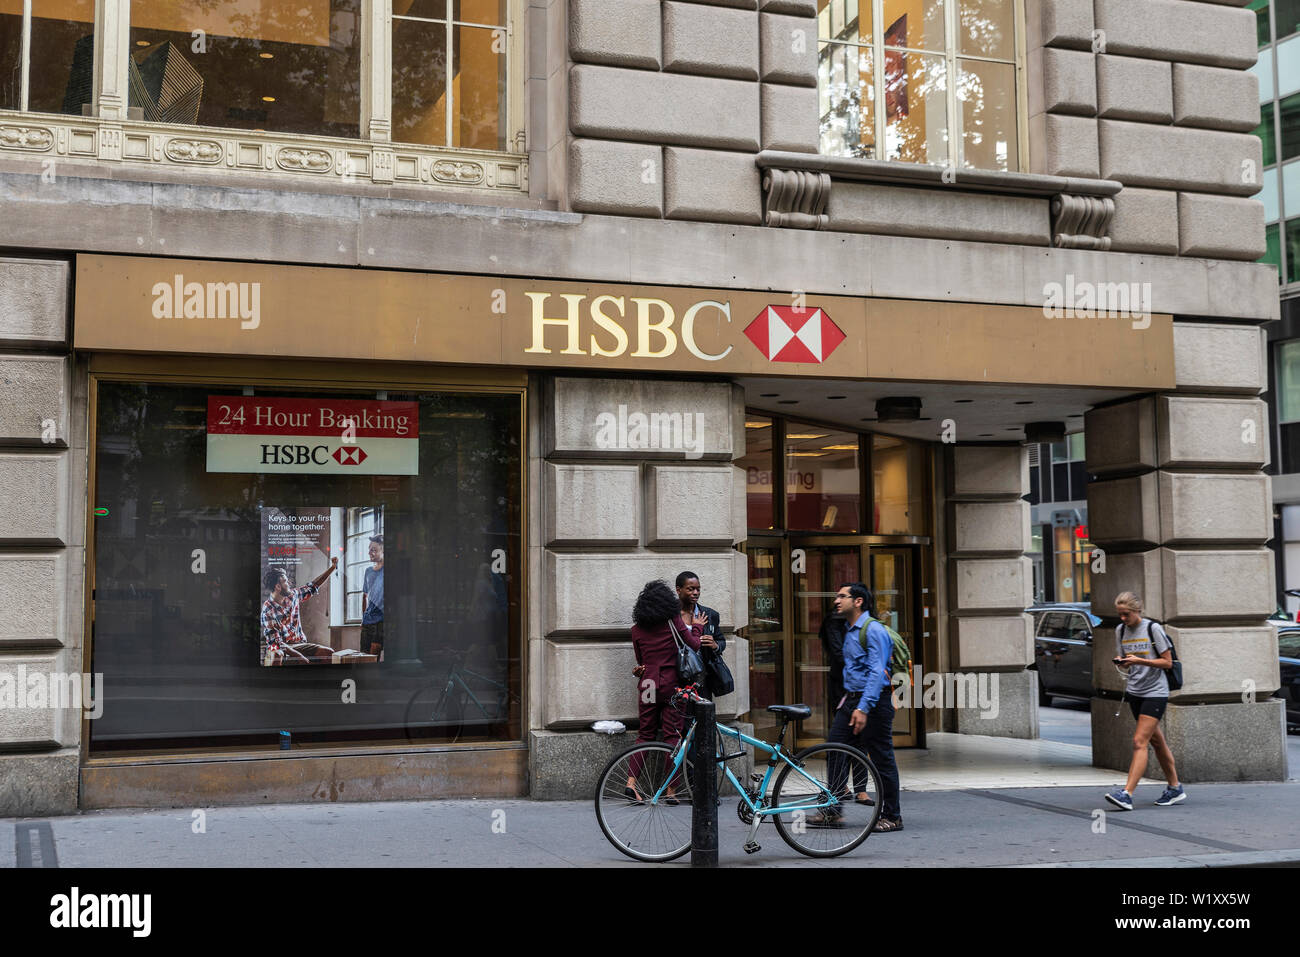 New York City, USA - August 1, 2018: Facade of a bank branch of HSBC with people around in Manhattan, New York City, USA - Stock Image